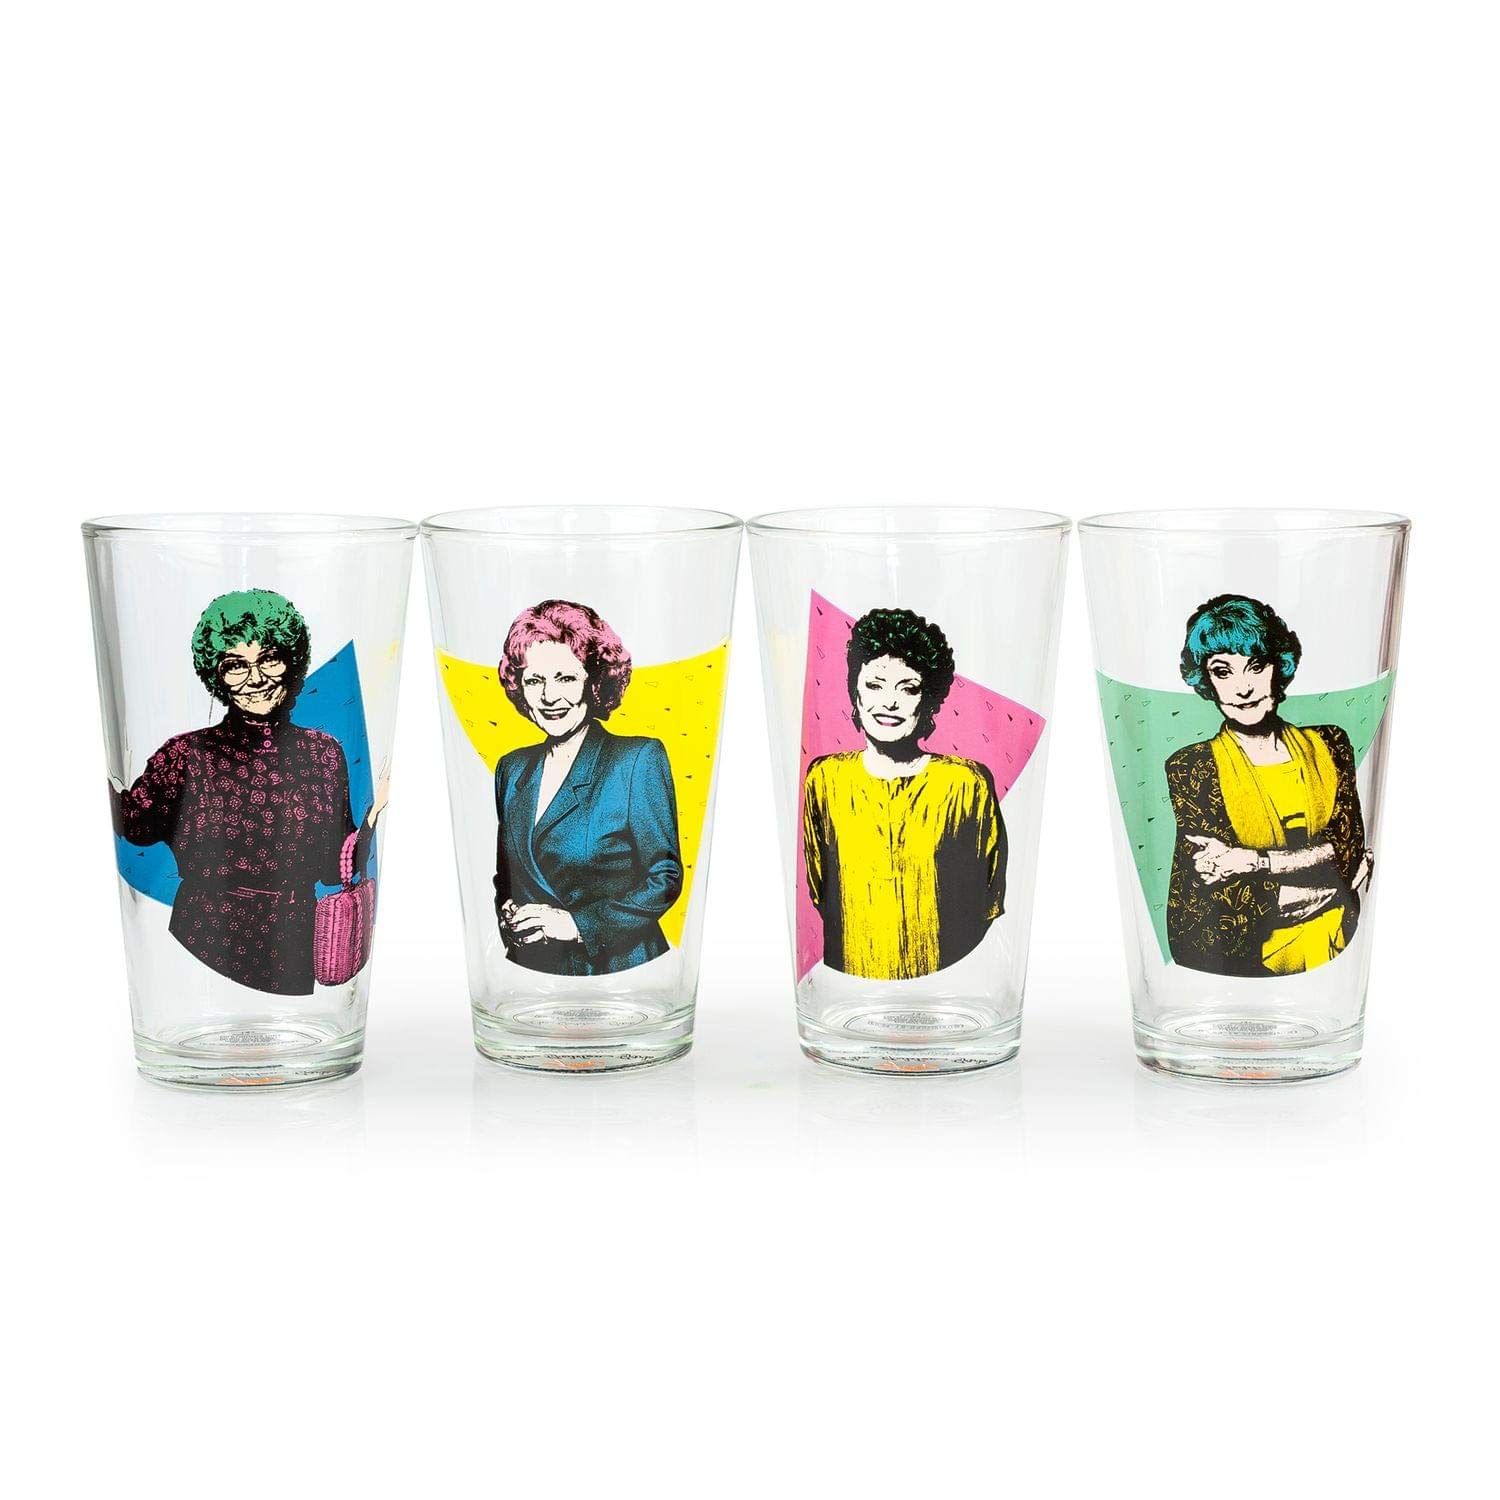 JUST FUNKY The Golden Girls Collectibles | Golden Girls Pint Glasses Set of 4 | 16 oz